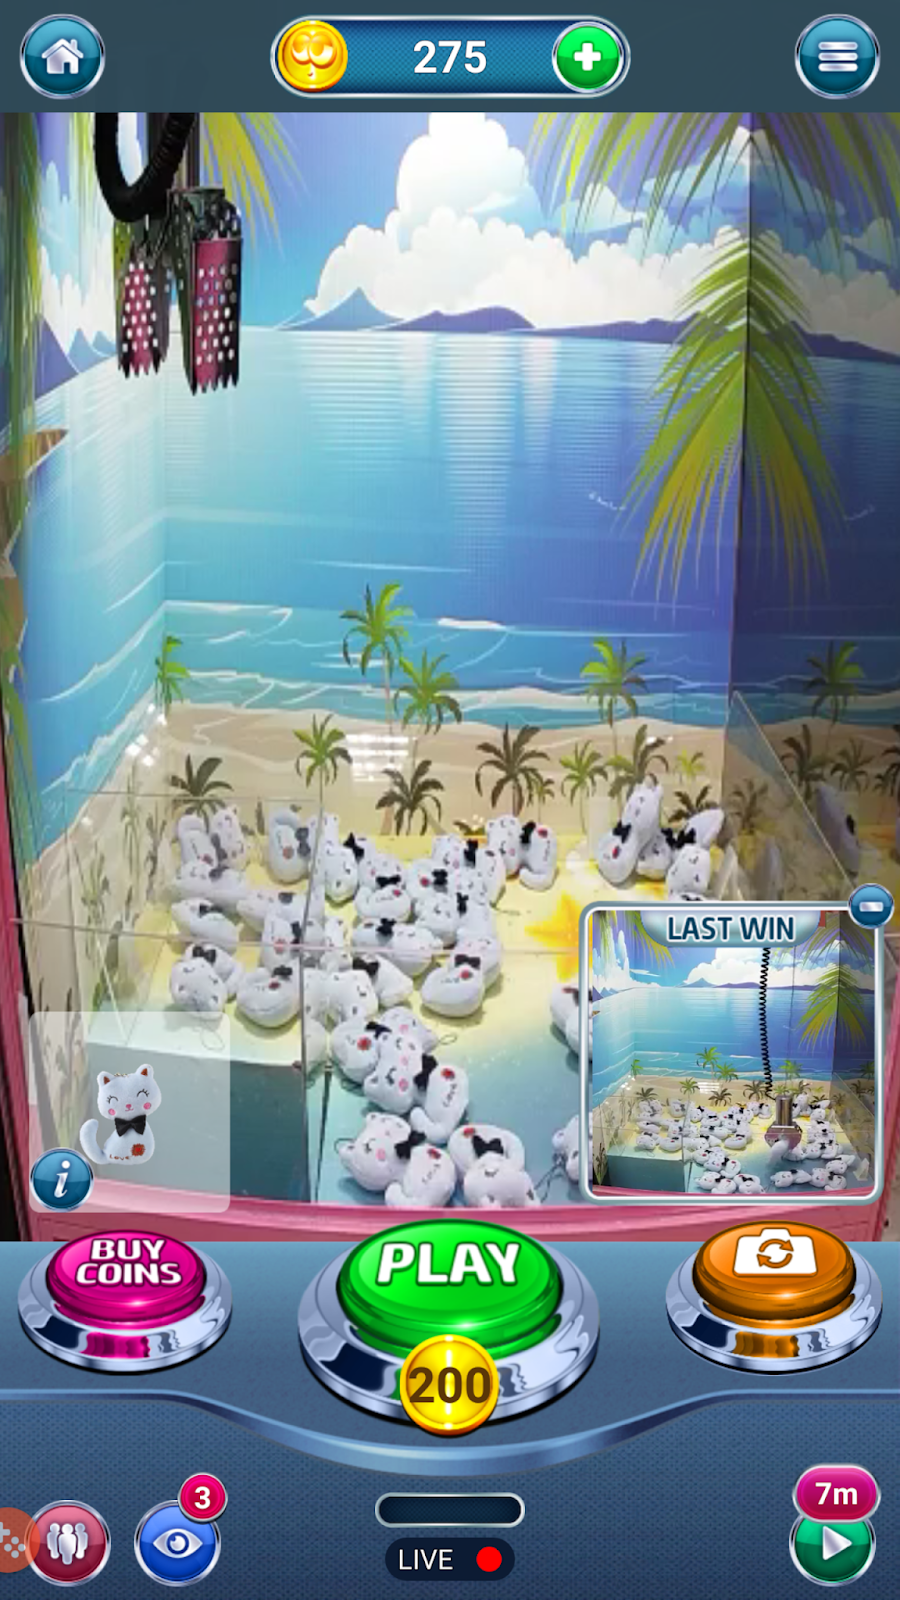 Clawee the Live Claw Machine App | Android Review - Her Gaming World